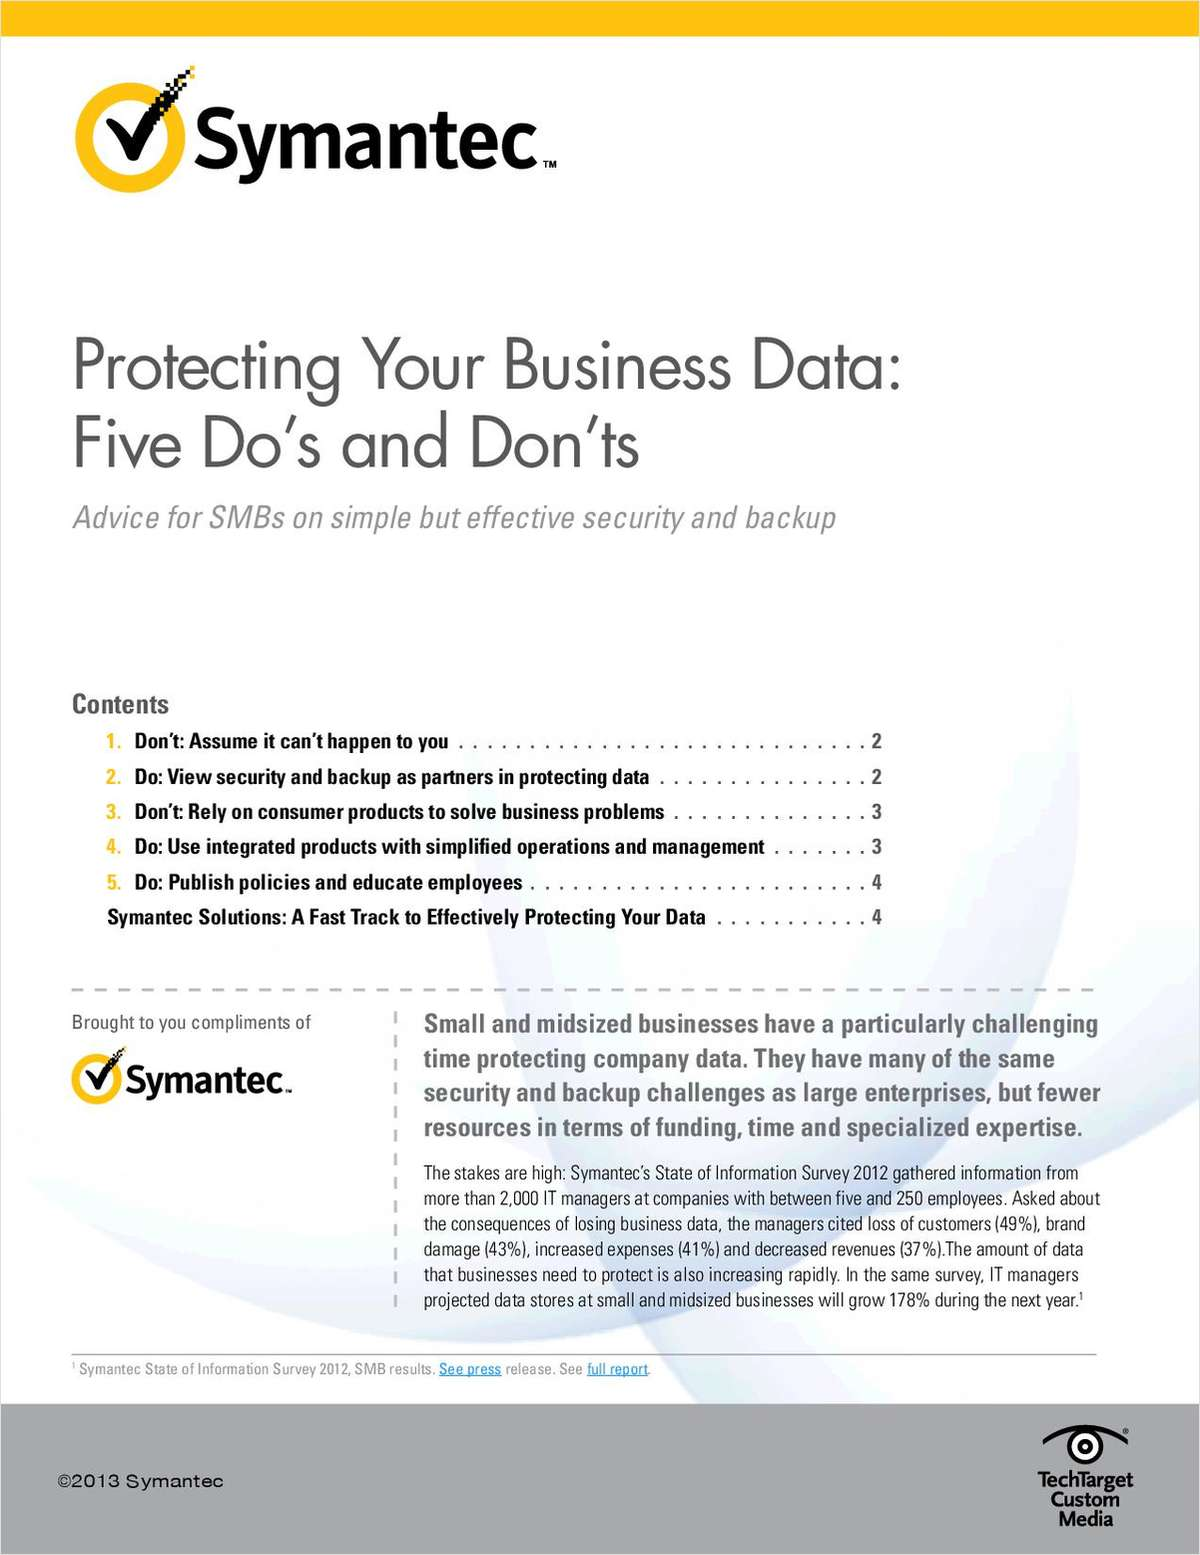 Protecting Your Business Data: Five Do's and Don'ts for SMBs